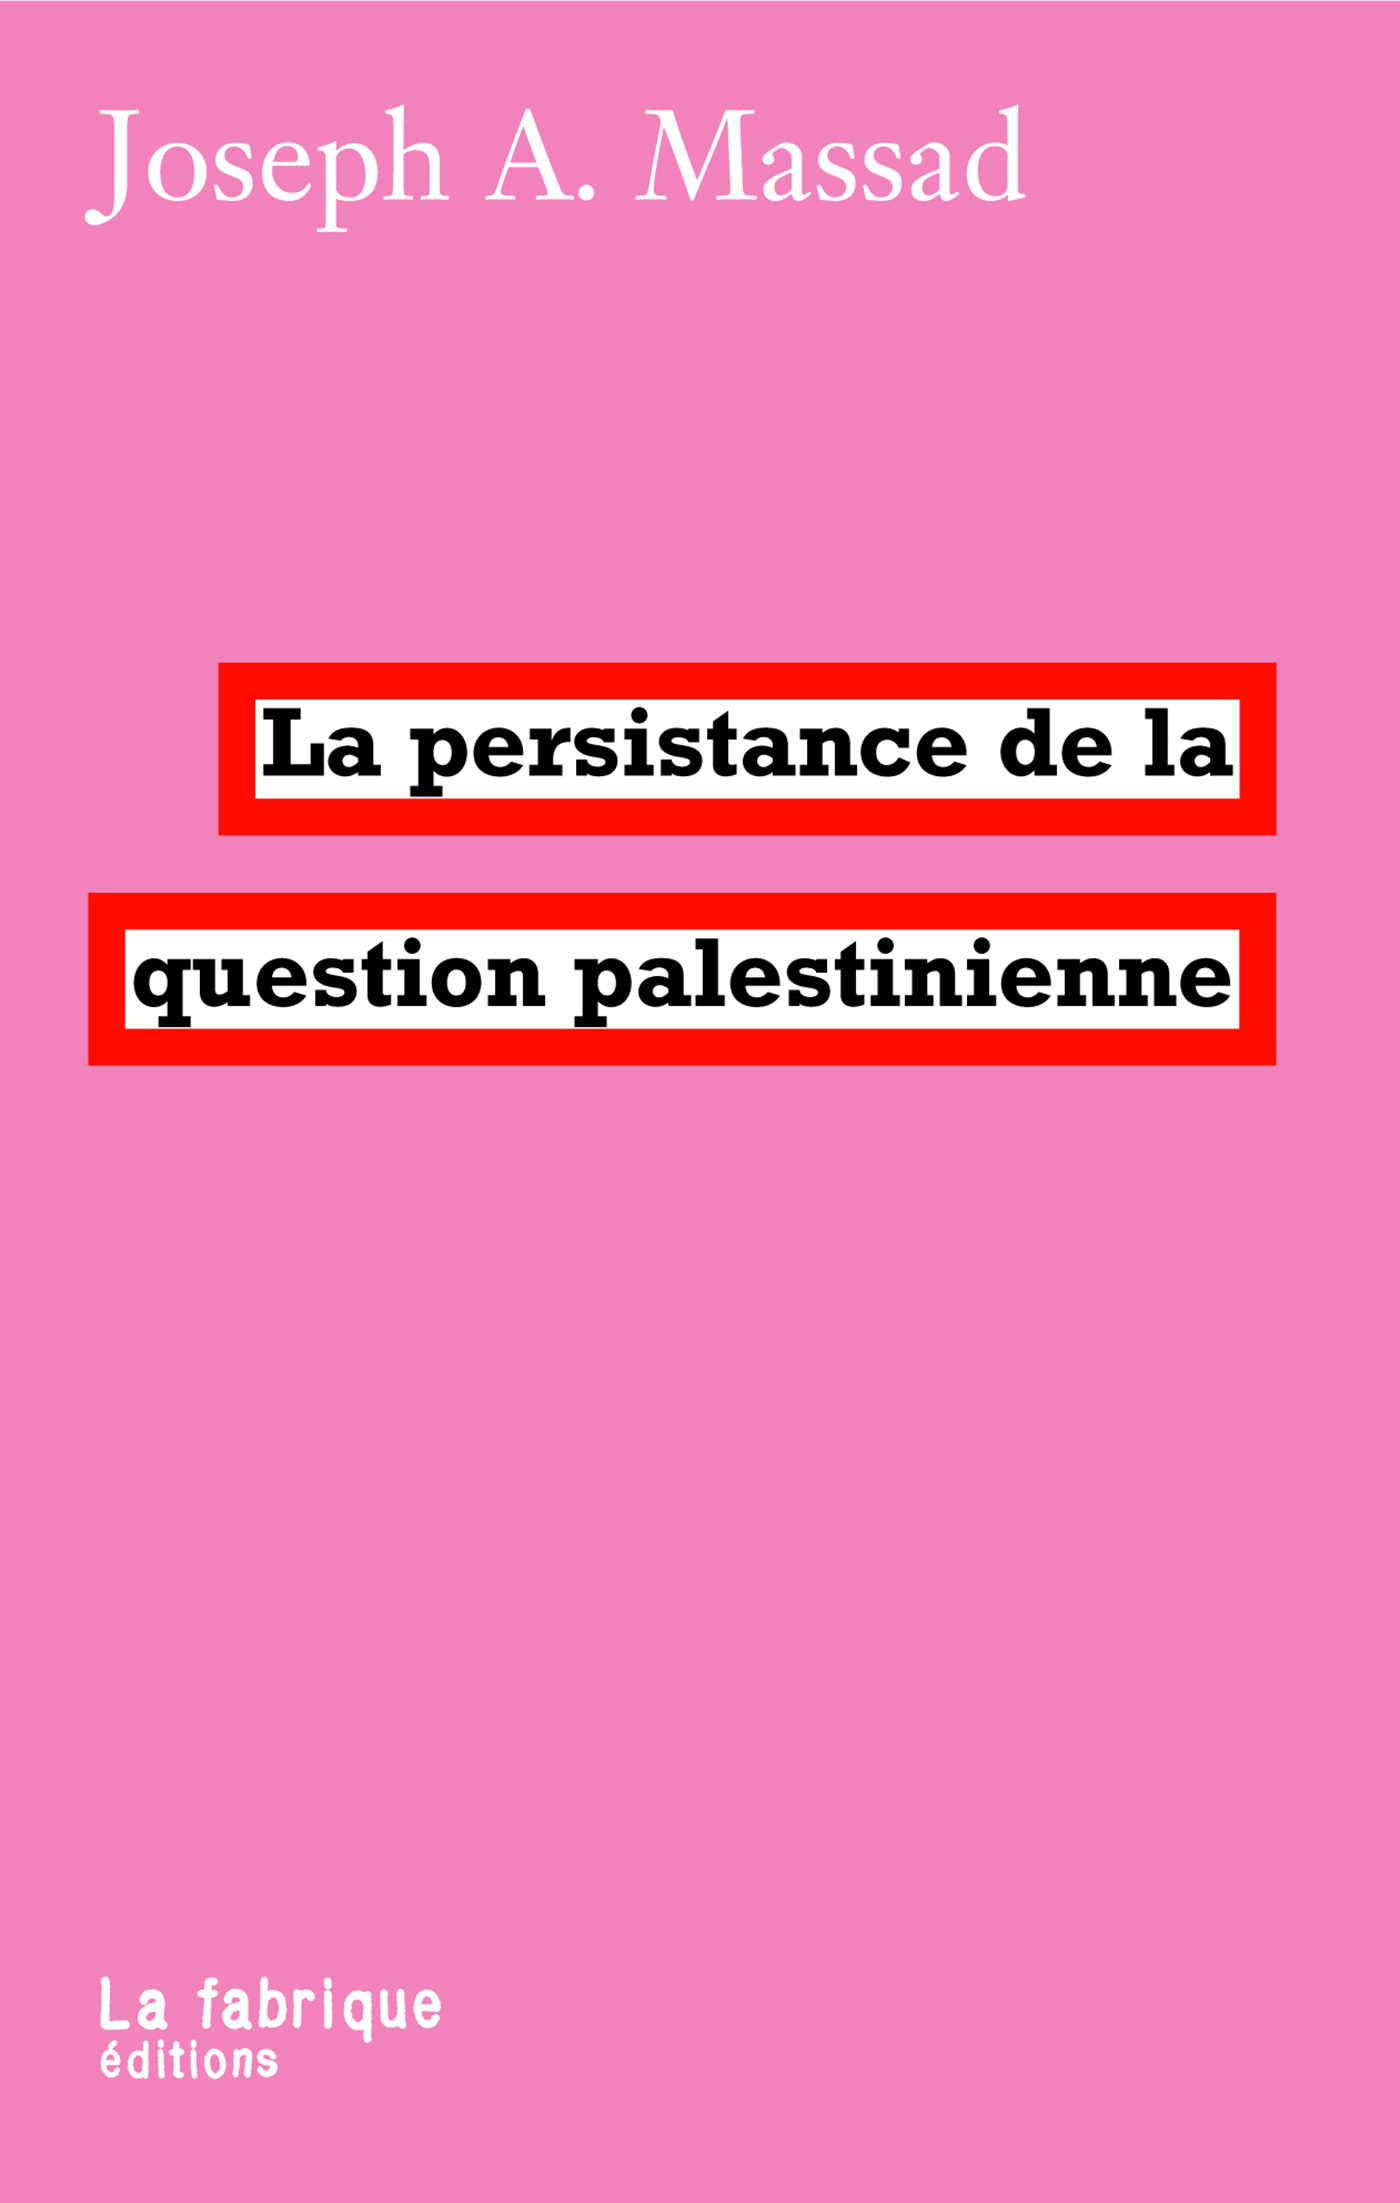 La persistance de la question palestinienne